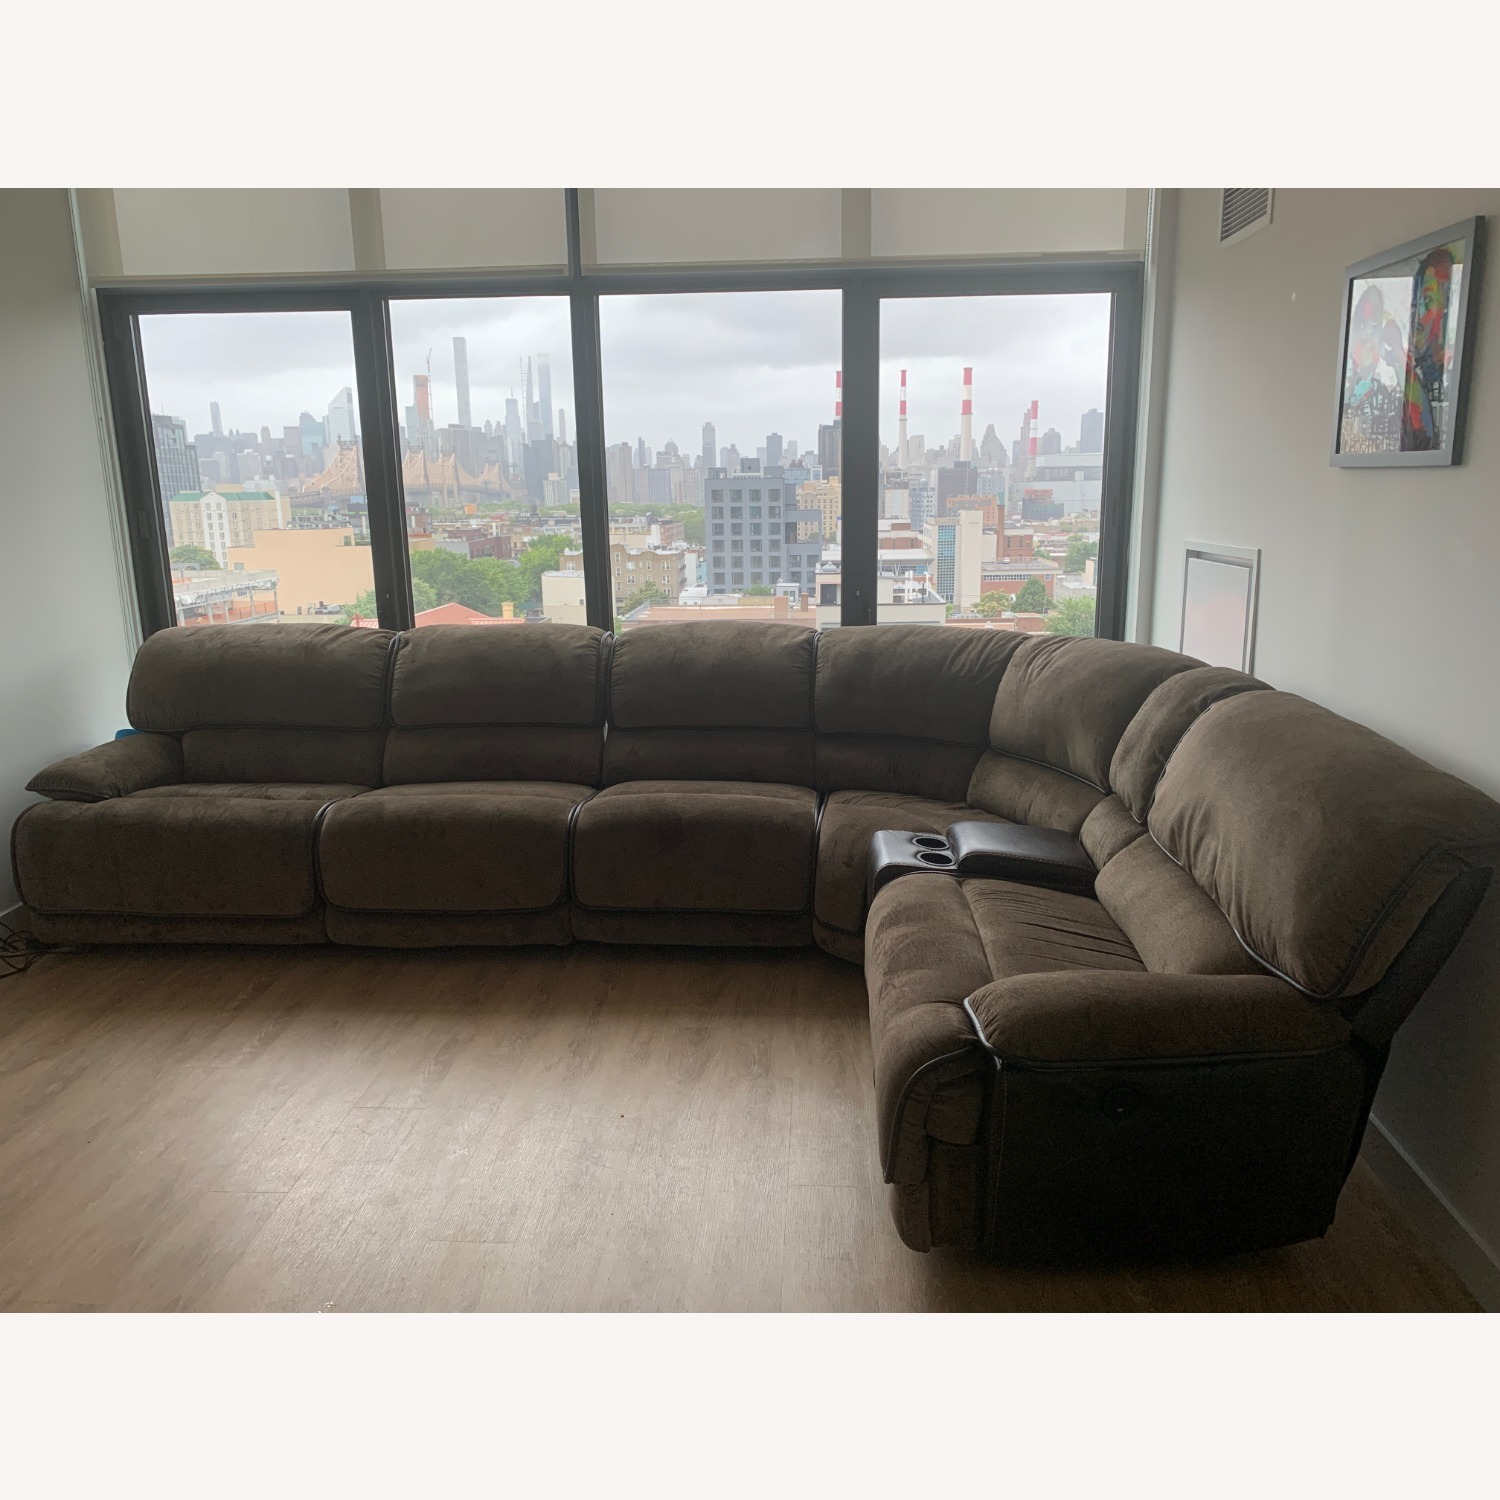 Bob's Discount 6 Piece Reclining Couch - image-1